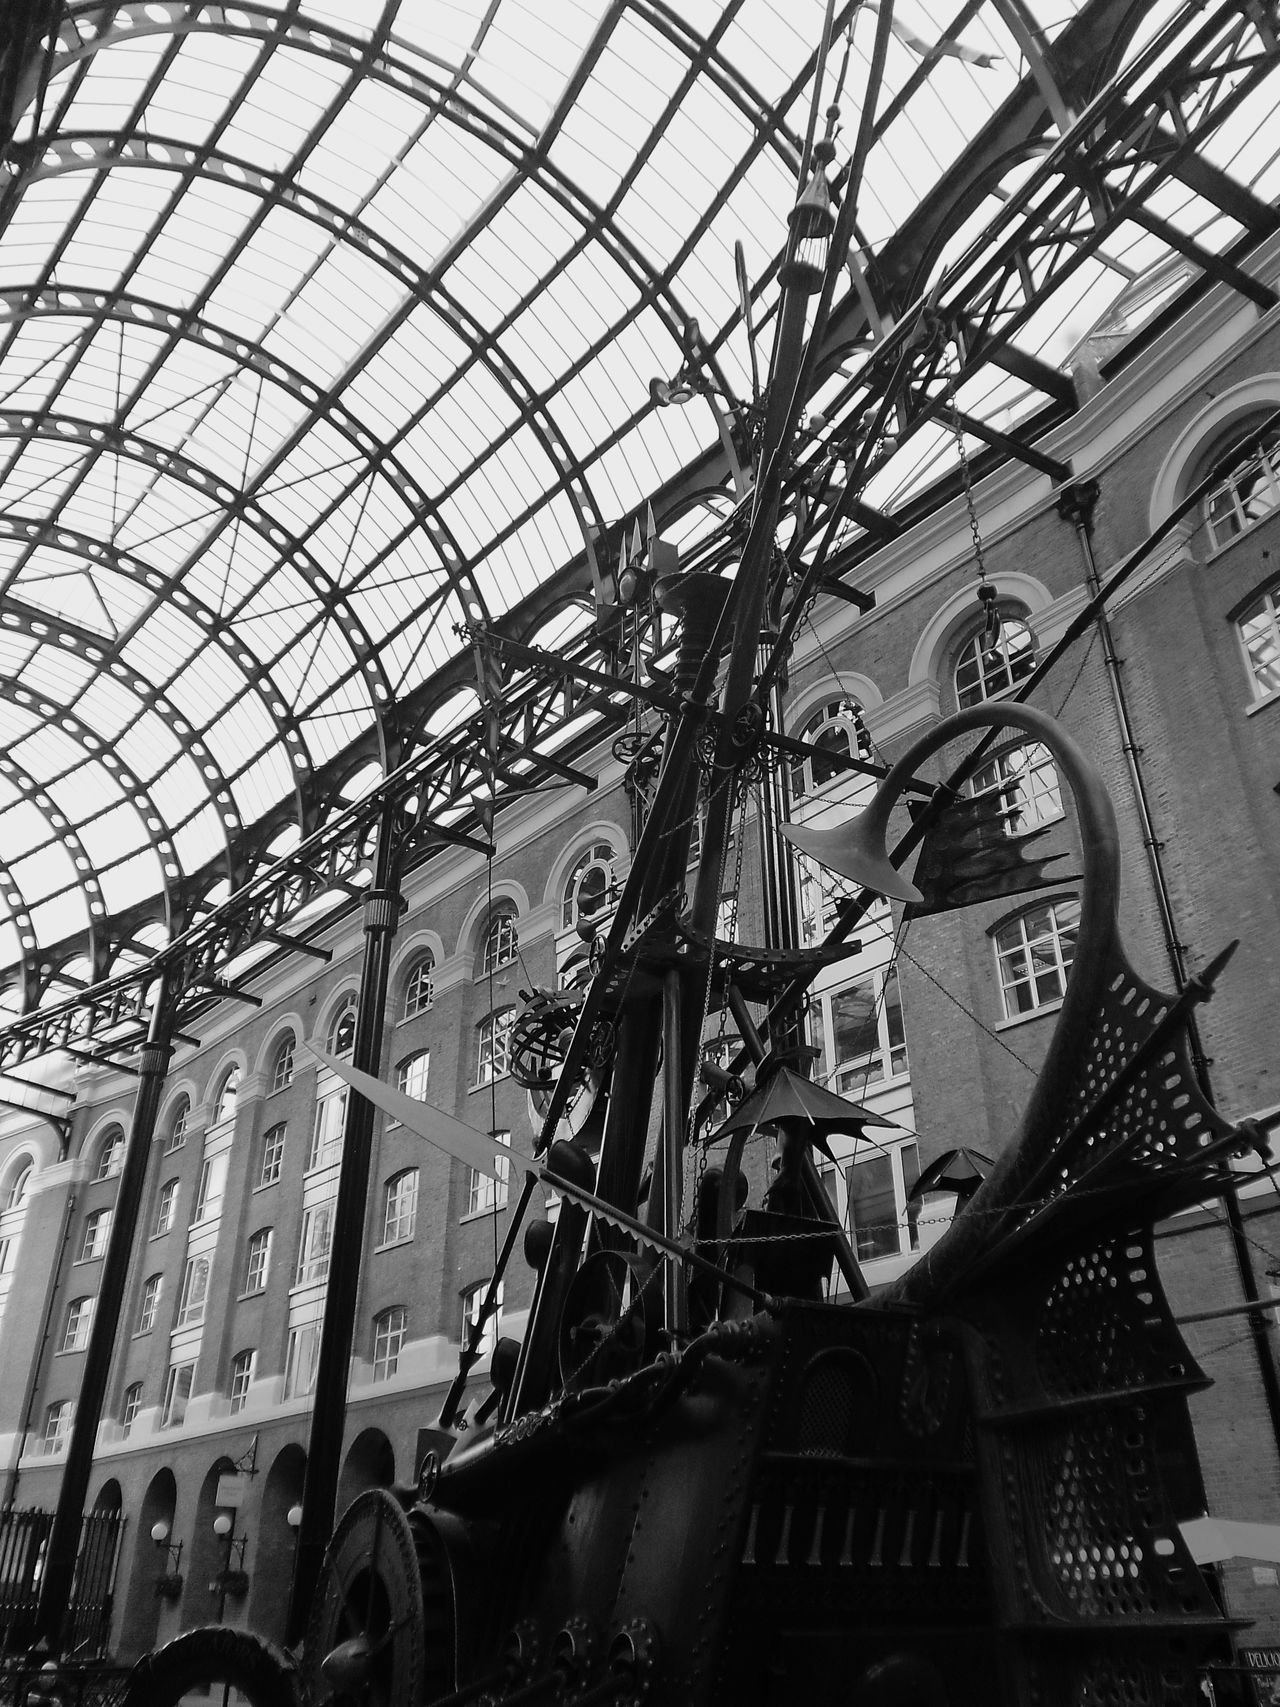 The Navigators, a sculpture by David Kemp. Hay's Galleria, Southwark, London Architecture Black And White Boat City Life David Kemp Hay's Galleria Low Angle View Metal Metal Boat Metal Sculpture Modern Sculpture Shopping Center Southwark  The Navigators Monochrome Photography London Lifestyle